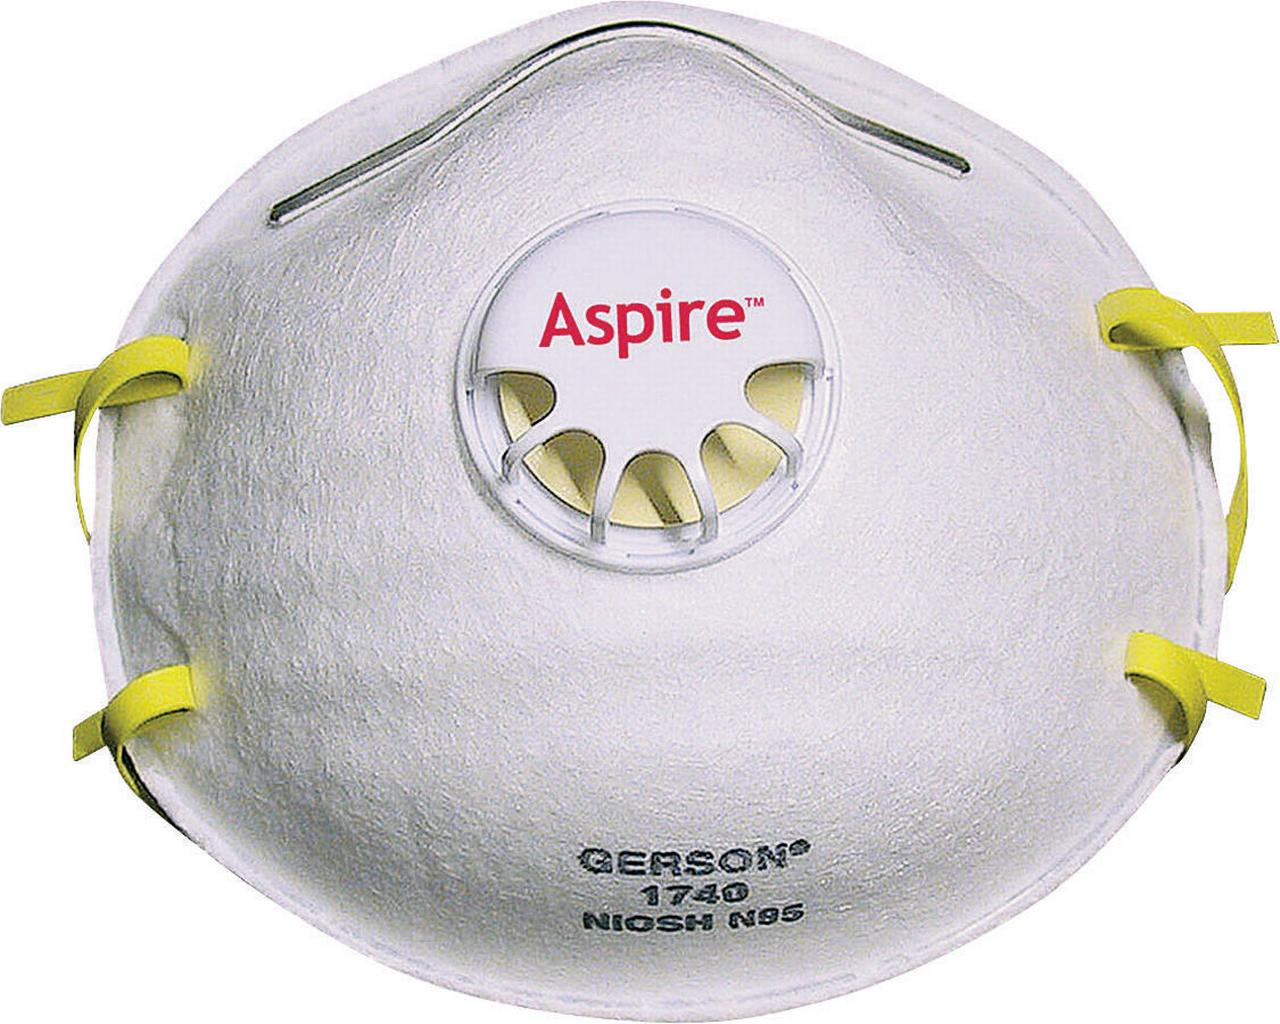 Jackson 64240 Disposable Particulate Respirator With Valve, Universal, N95, White by Kimberly Clark